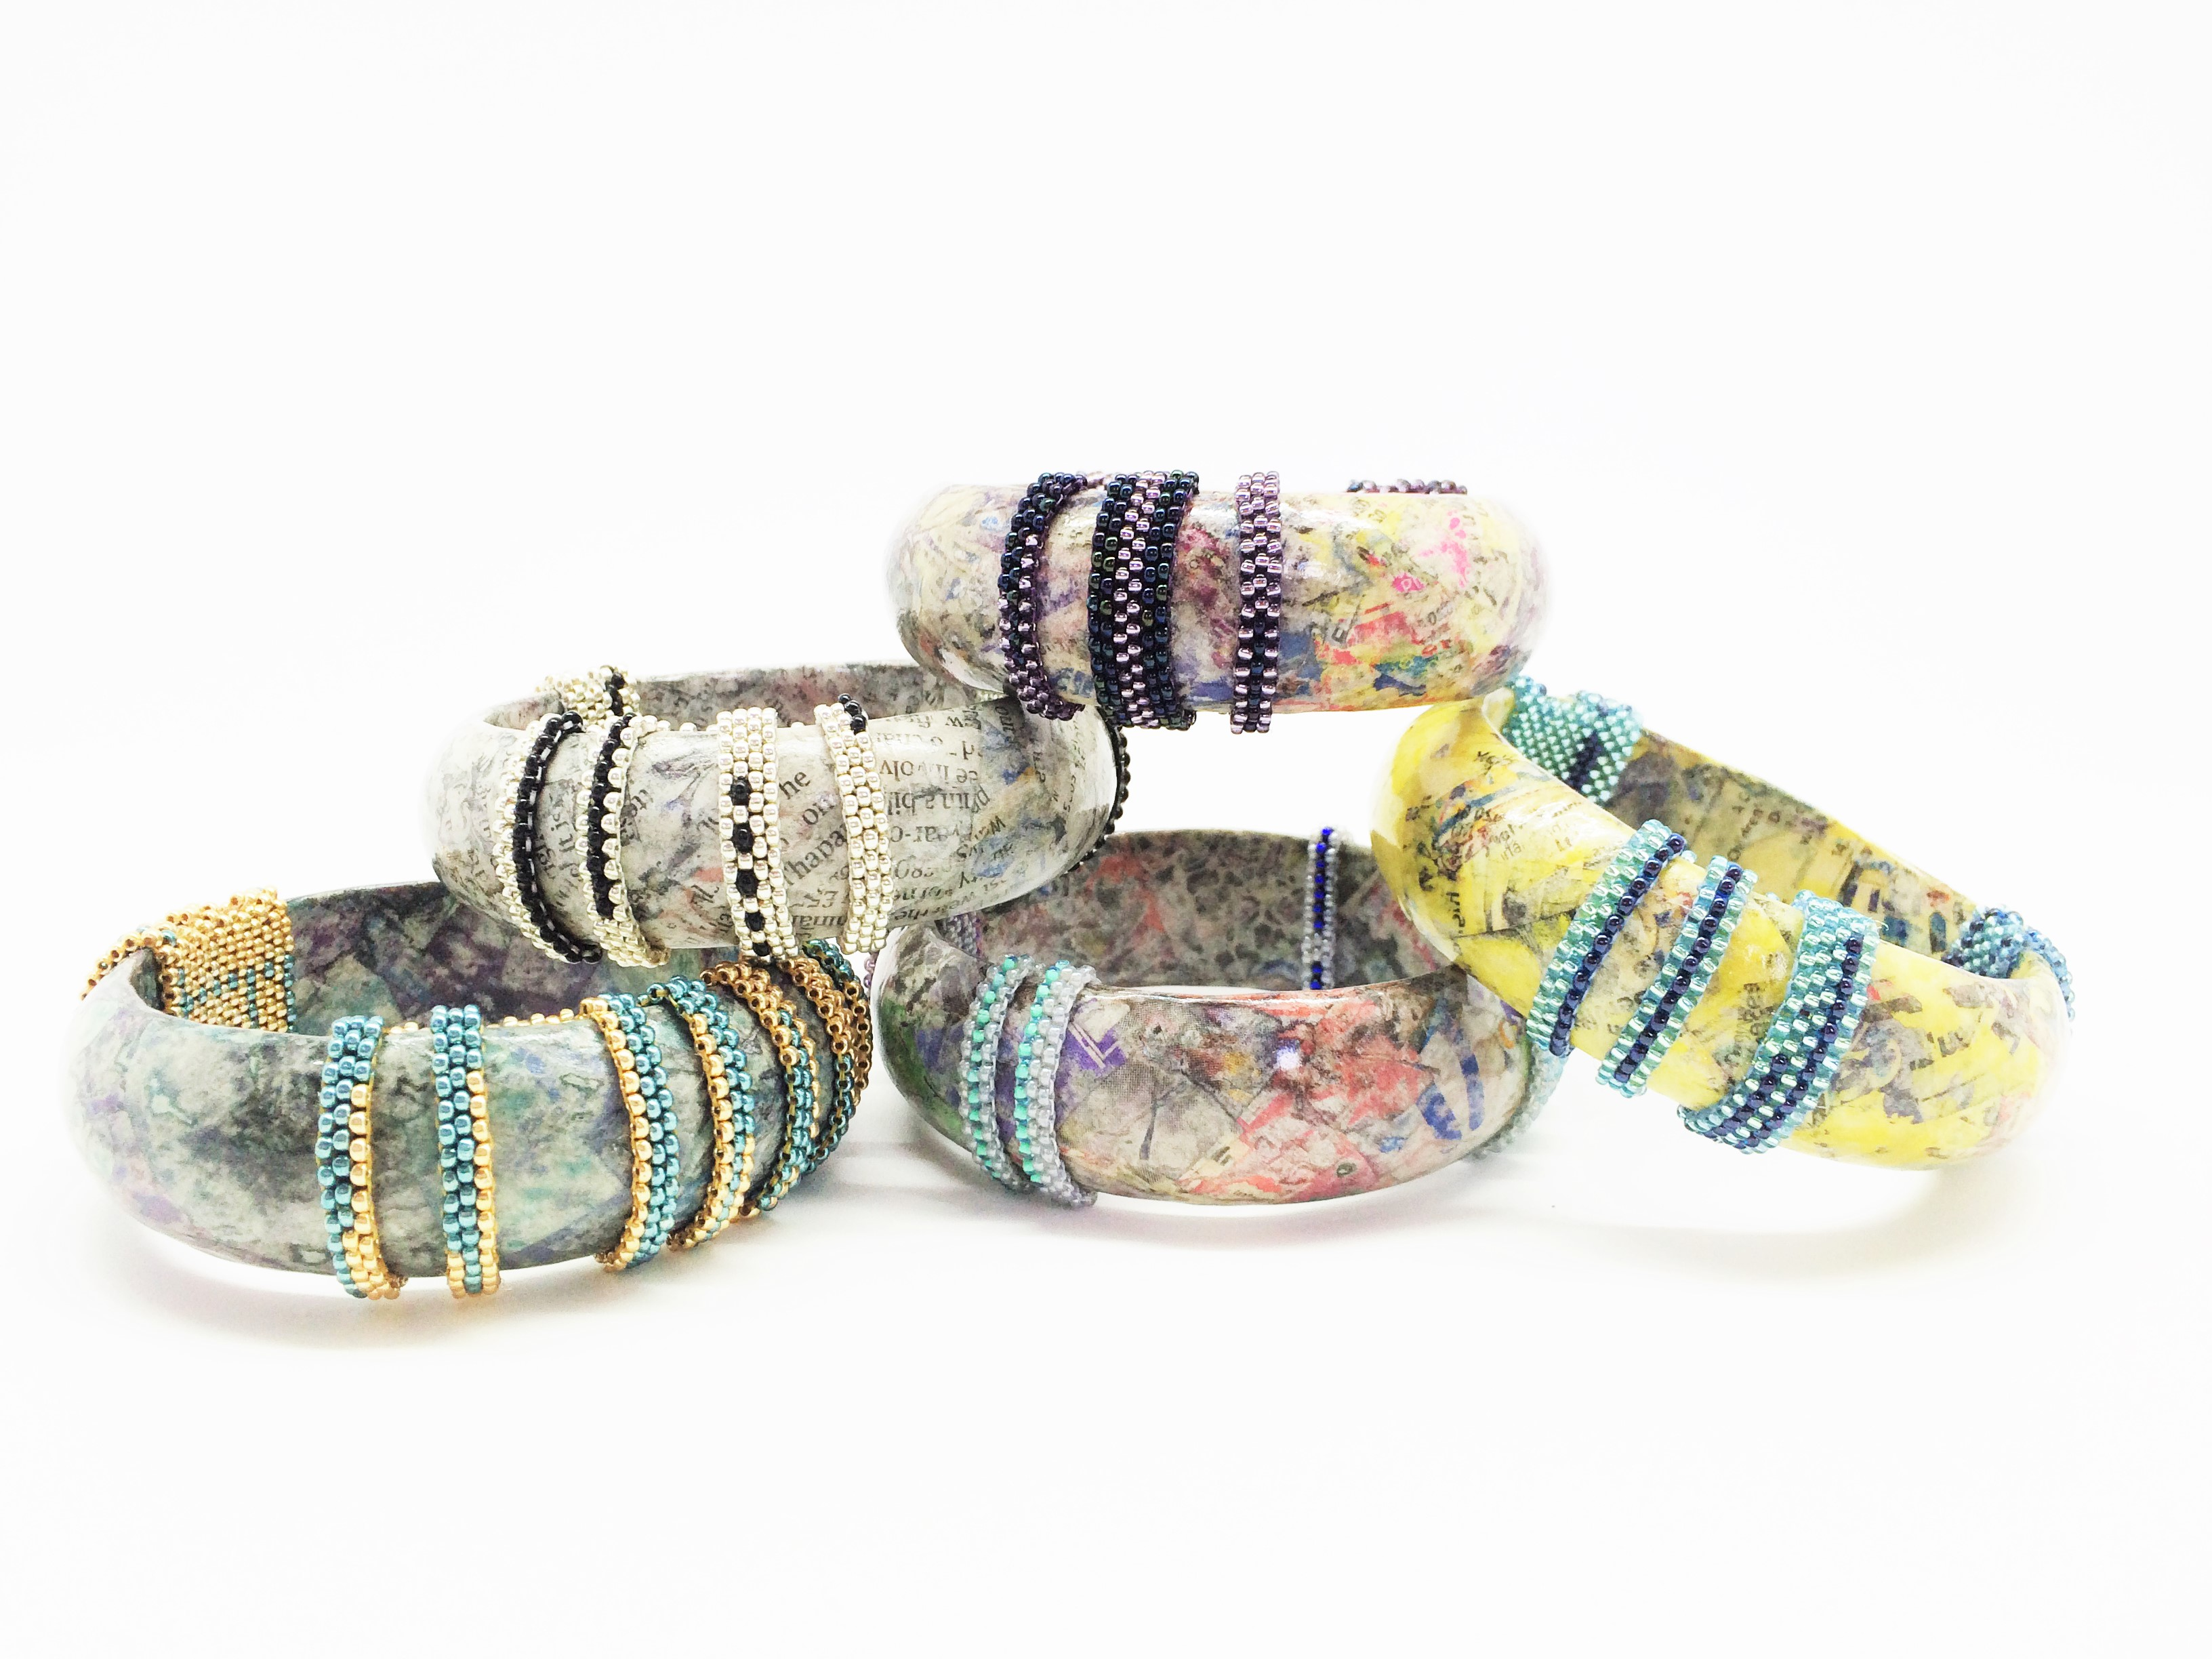 Urchin bangles in paper and bead work by Danii Crompton Designs